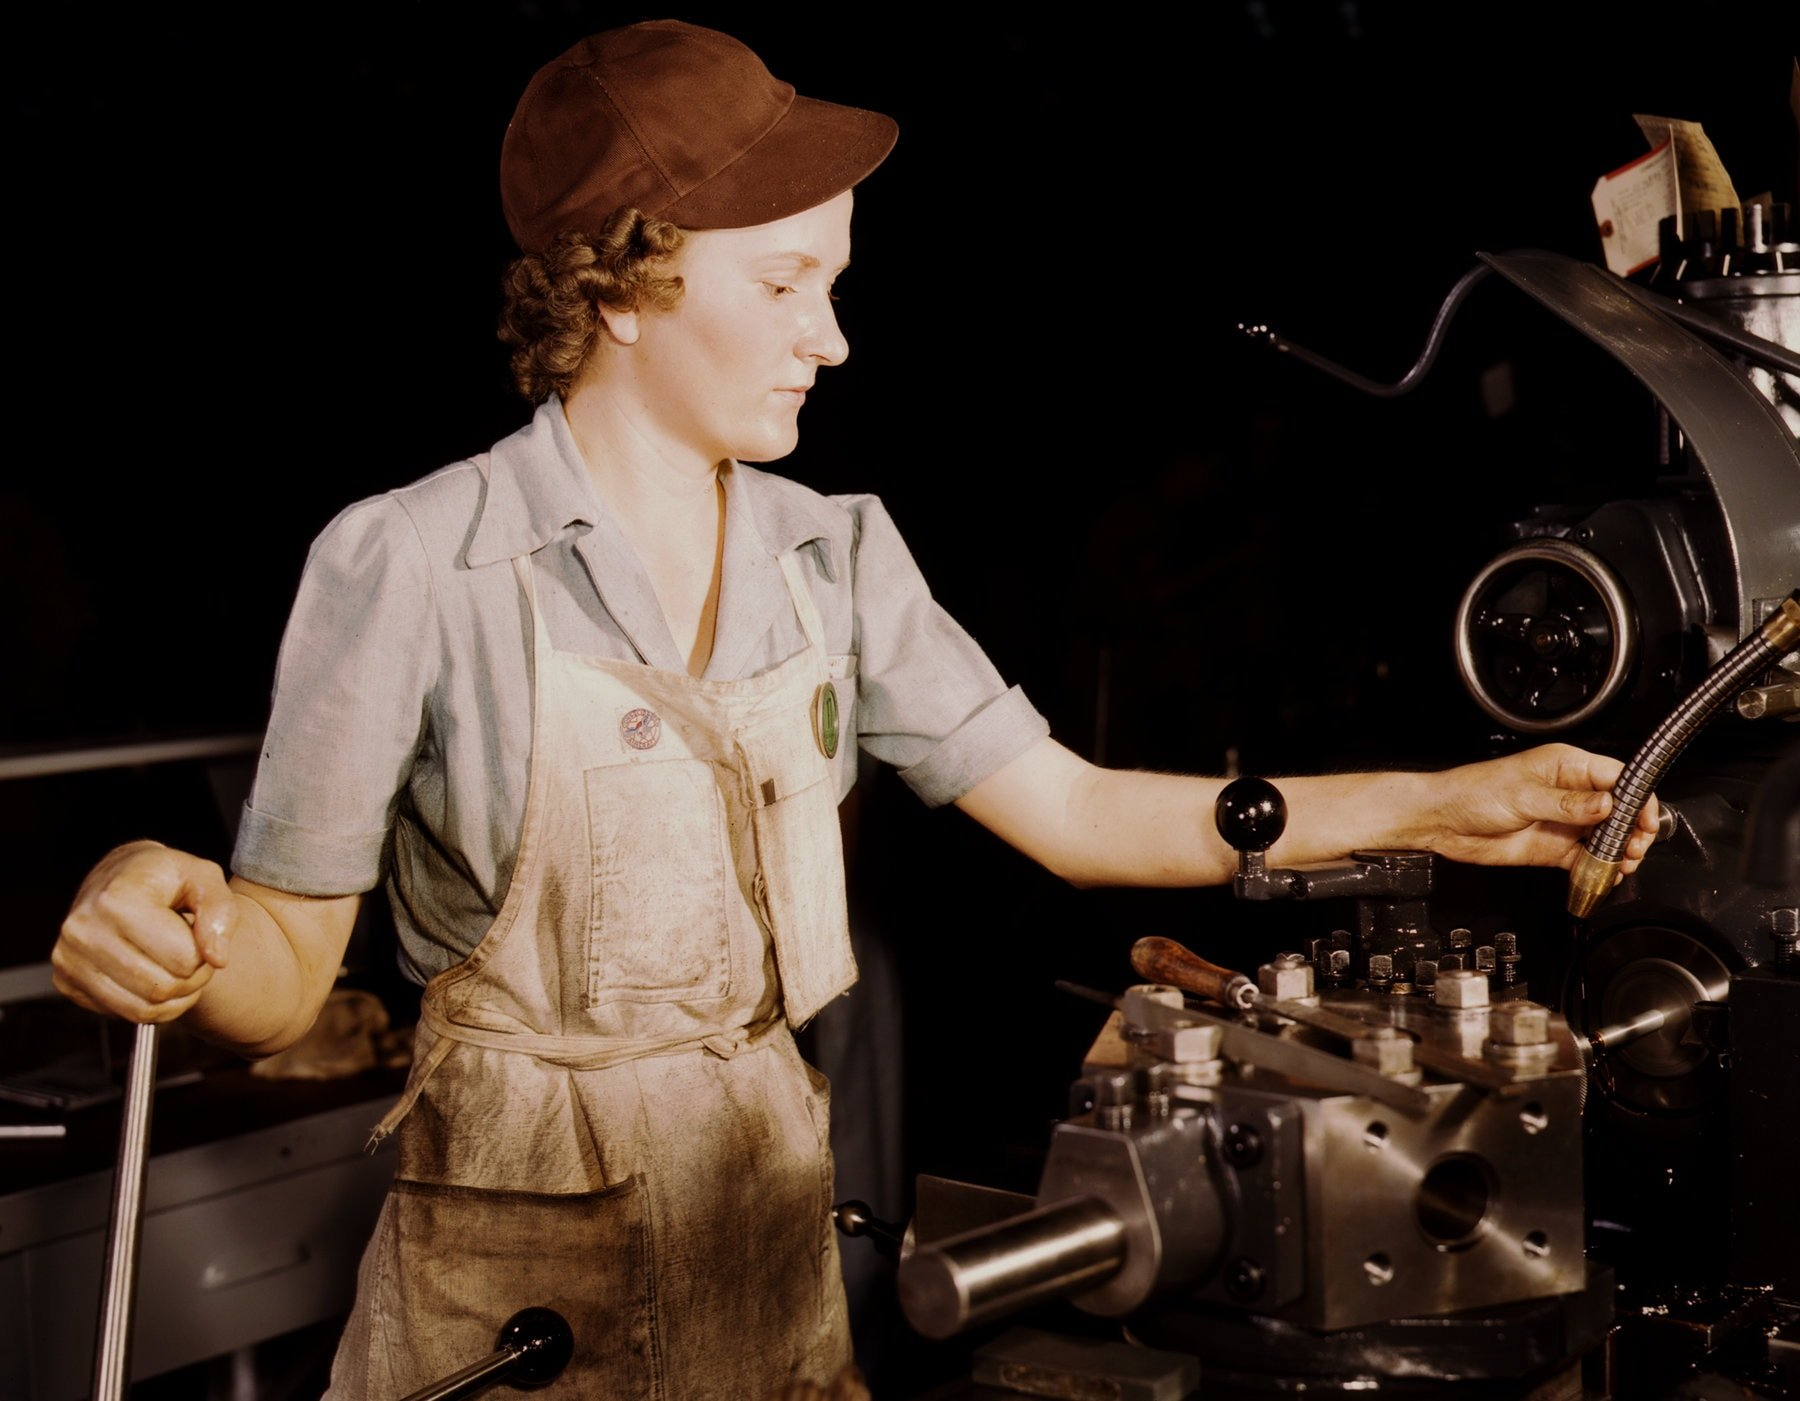 Building WWII fighter planes in the 1940s - Reaming tools for transport on lathe machine